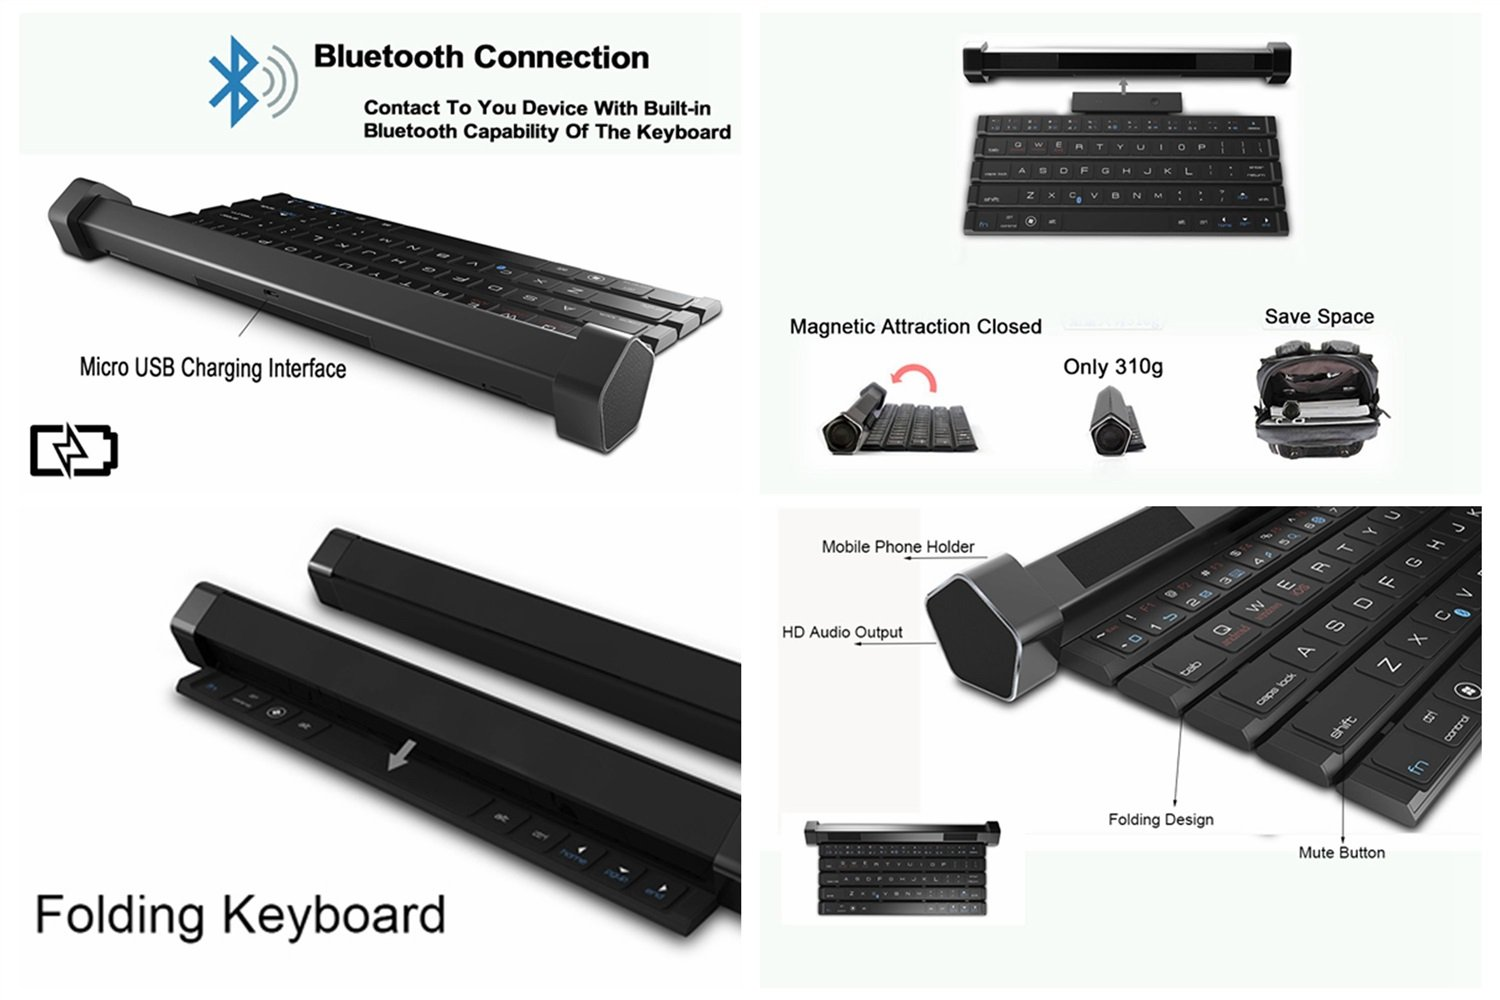 HOIHO Portable speaker/bluetooth keyboard speaker portable bluetooth wireless smart speaker keyboard bluetooth for mobile phones by HOIHO (Image #3)